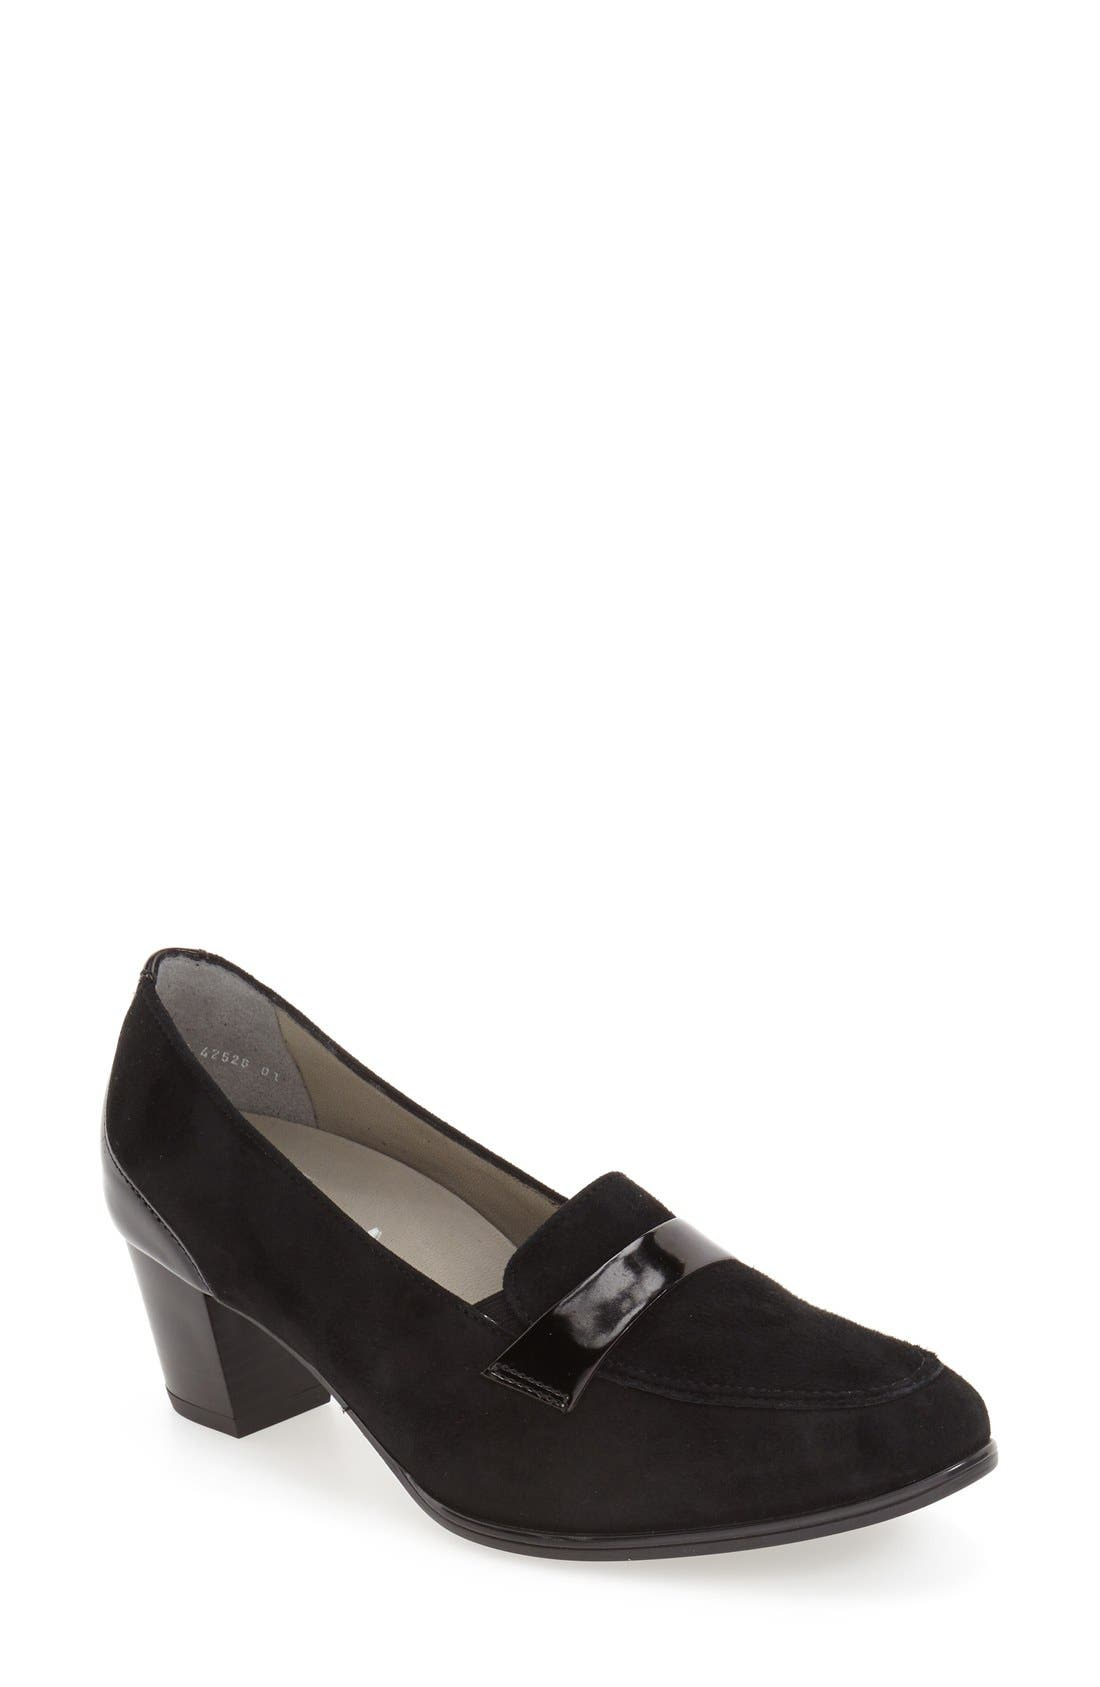 Main Image - ara 'MarryAnn' Loafer Pump (Women)